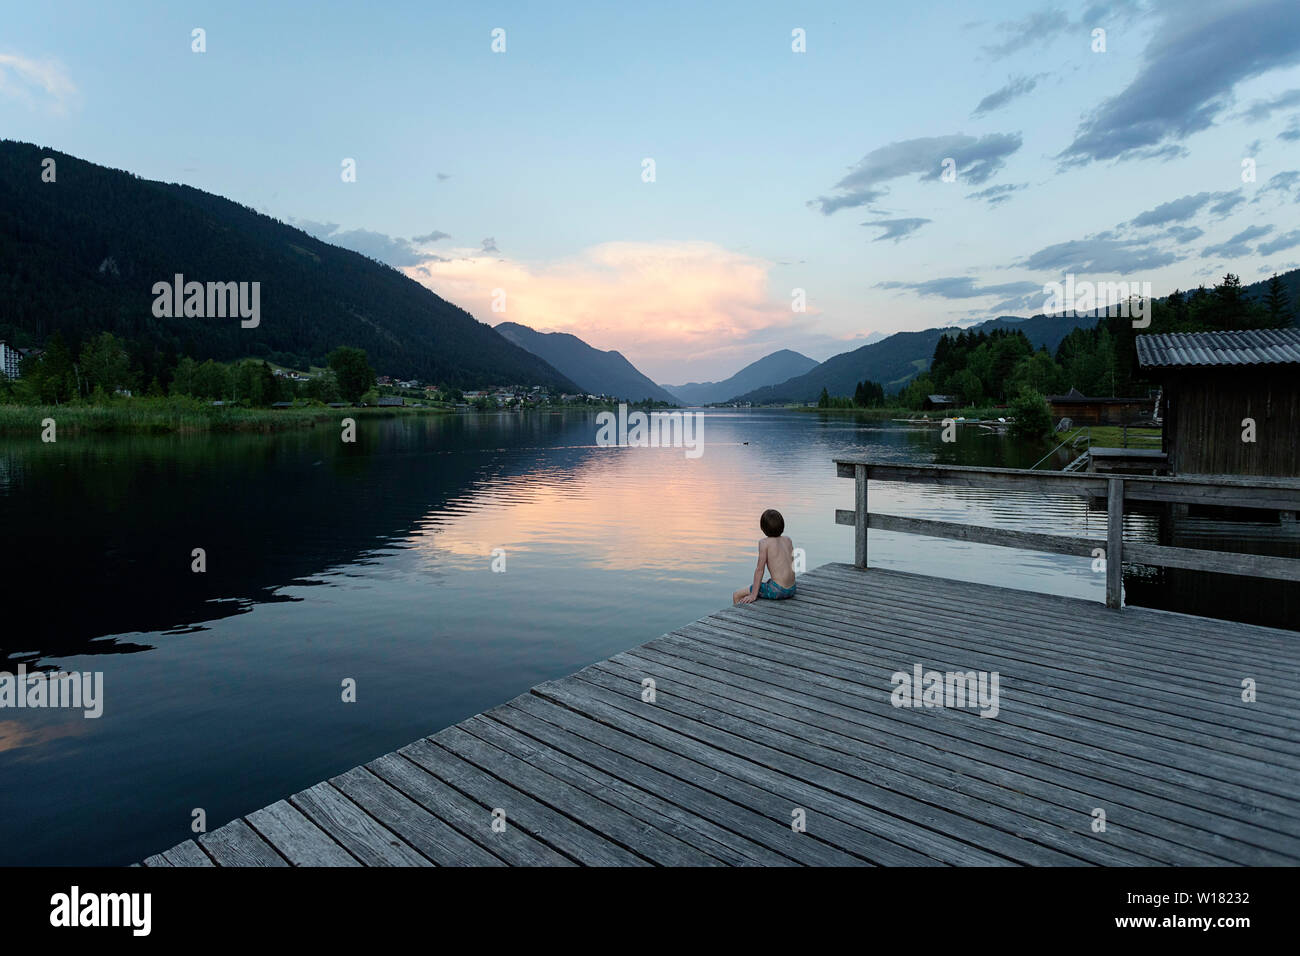 Young boy in swimming suit sitting on wooden pier on lake Weissensee in Austria at sunset - Stock Image